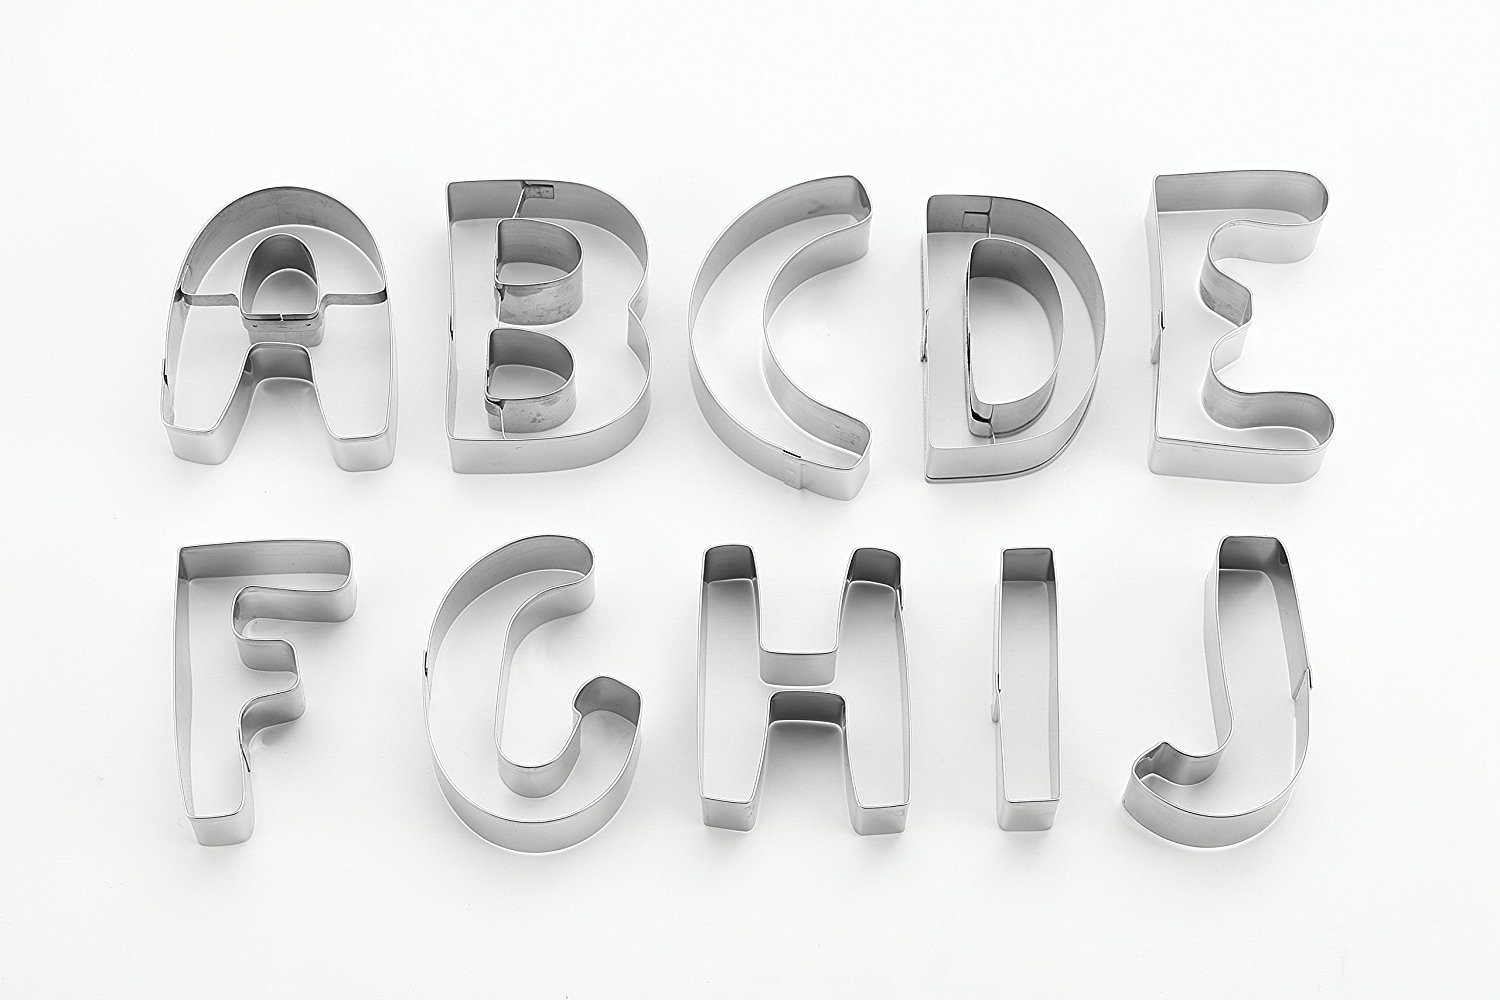 Kitchen Gadget 6 Letters 26 Piece Large Alphabet Cookie Cutter Set A Z